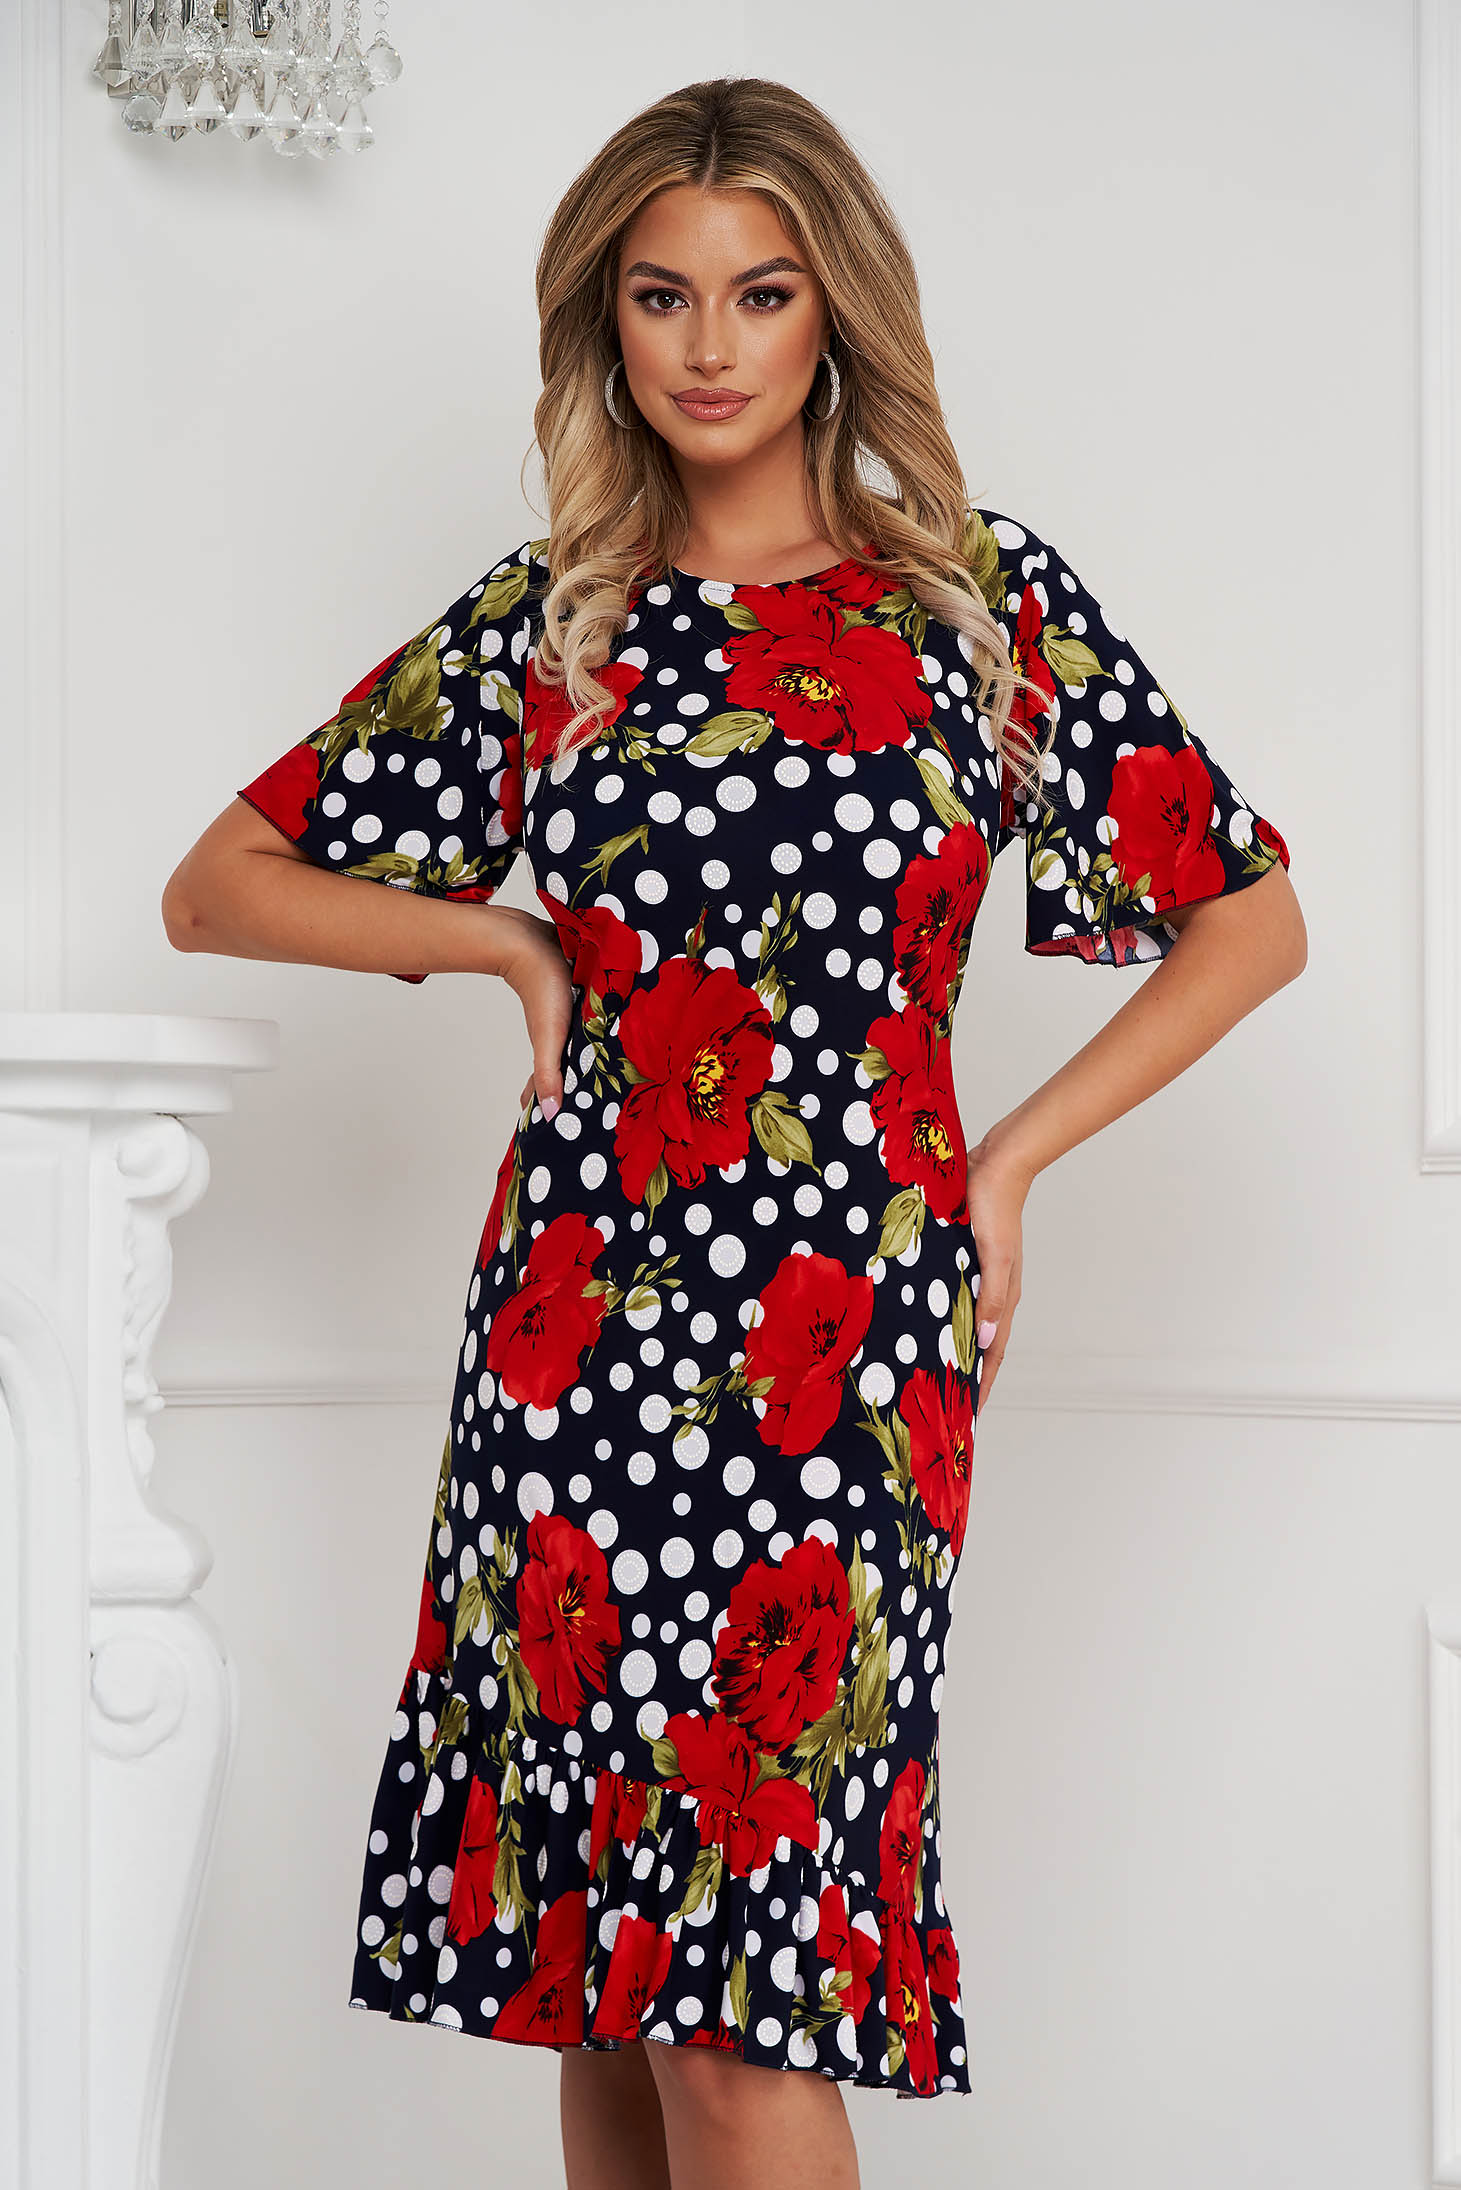 Dress midi straight from elastic fabric with ruffle details with floral print